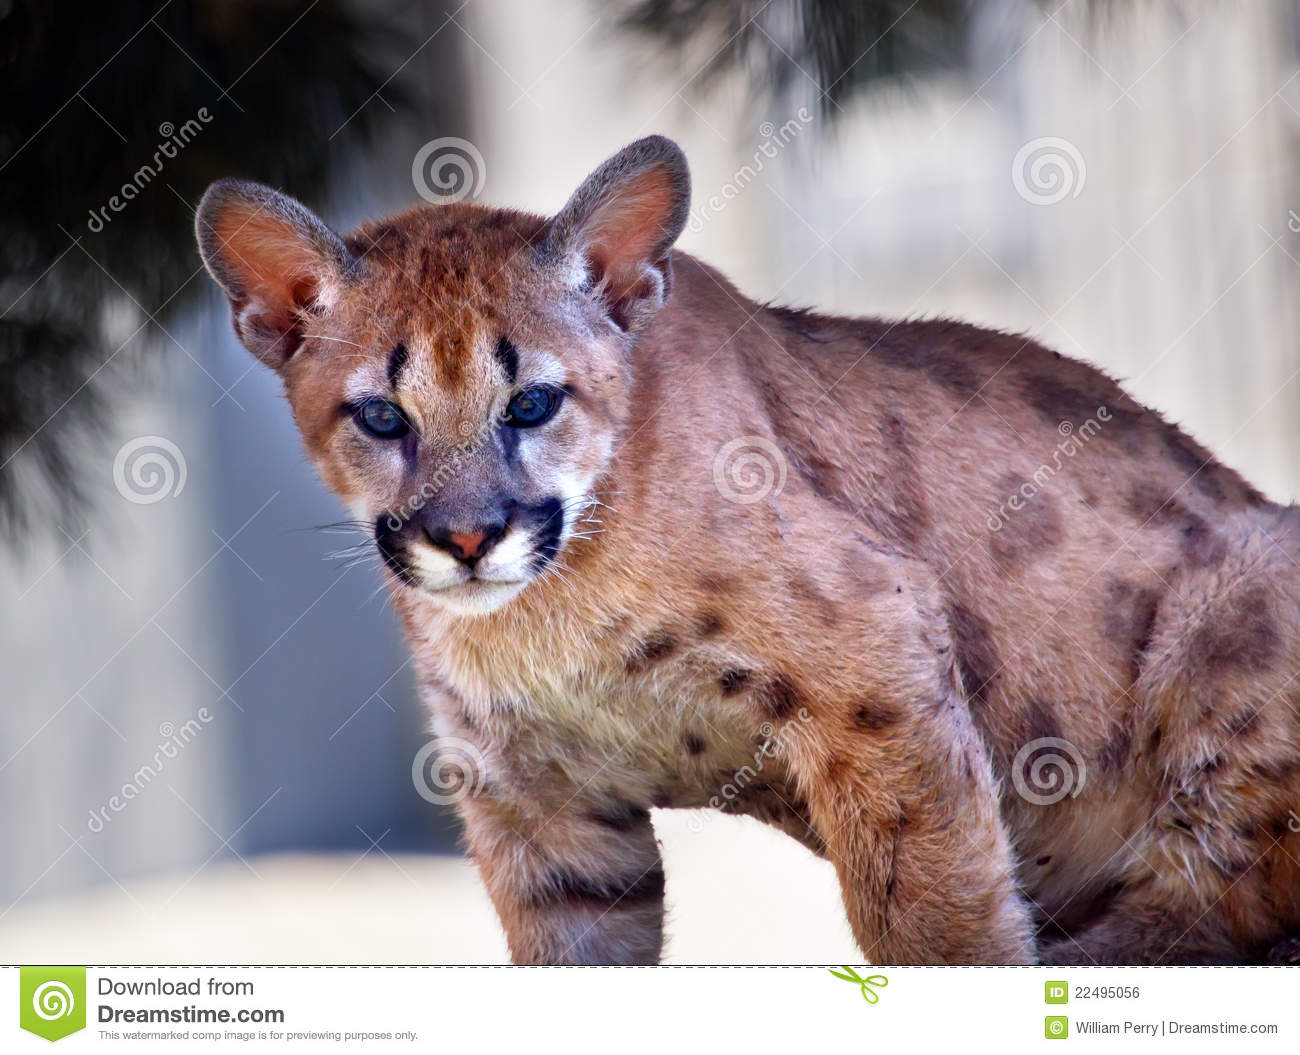 And cougar young I'm a